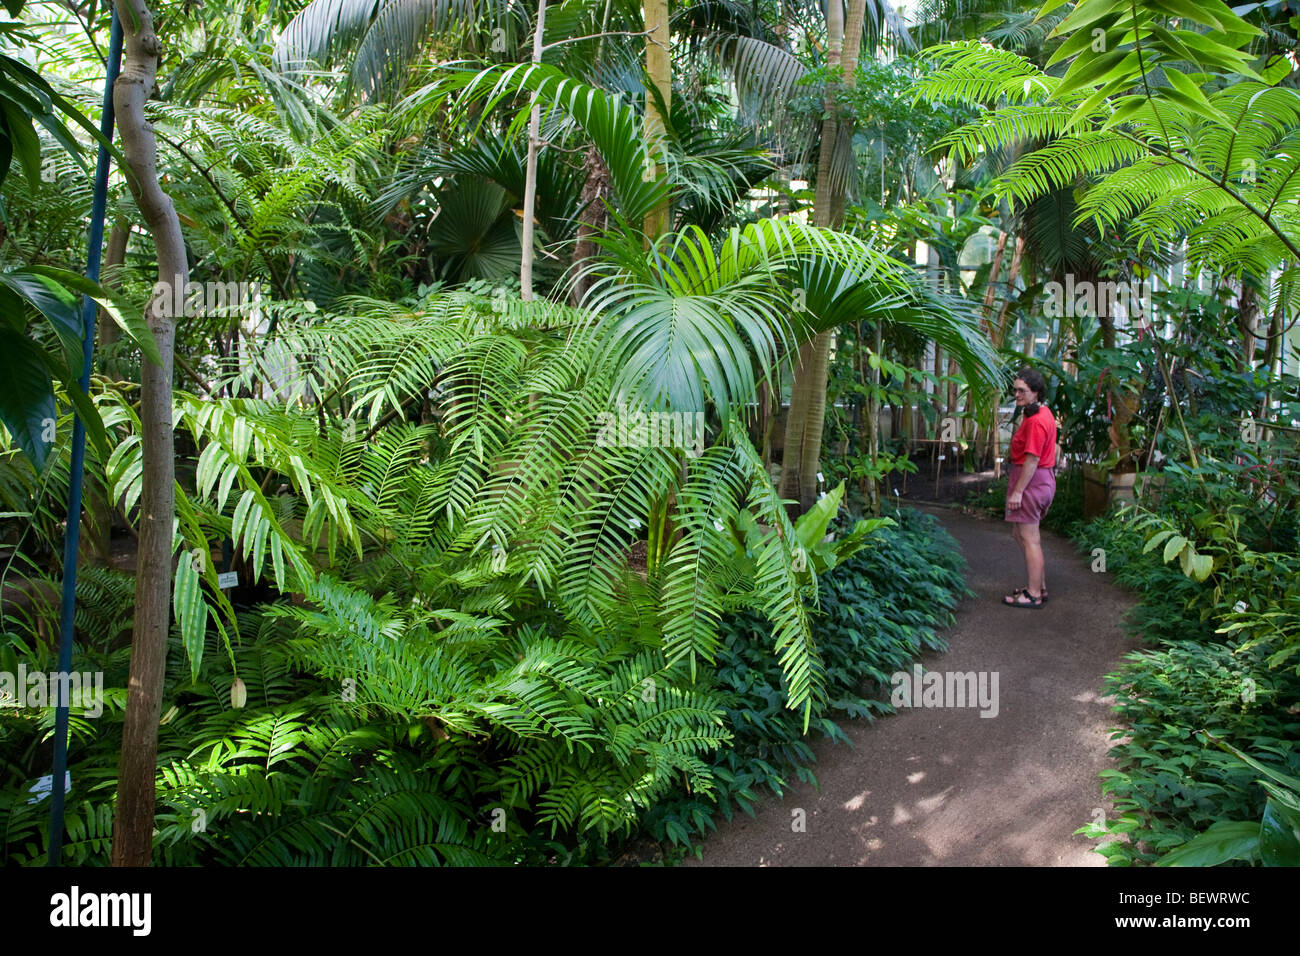 Woman visitor in greenhouse National Botanic Gardens Nationale Plantentuin Meise Brussels Belgium - Stock Image